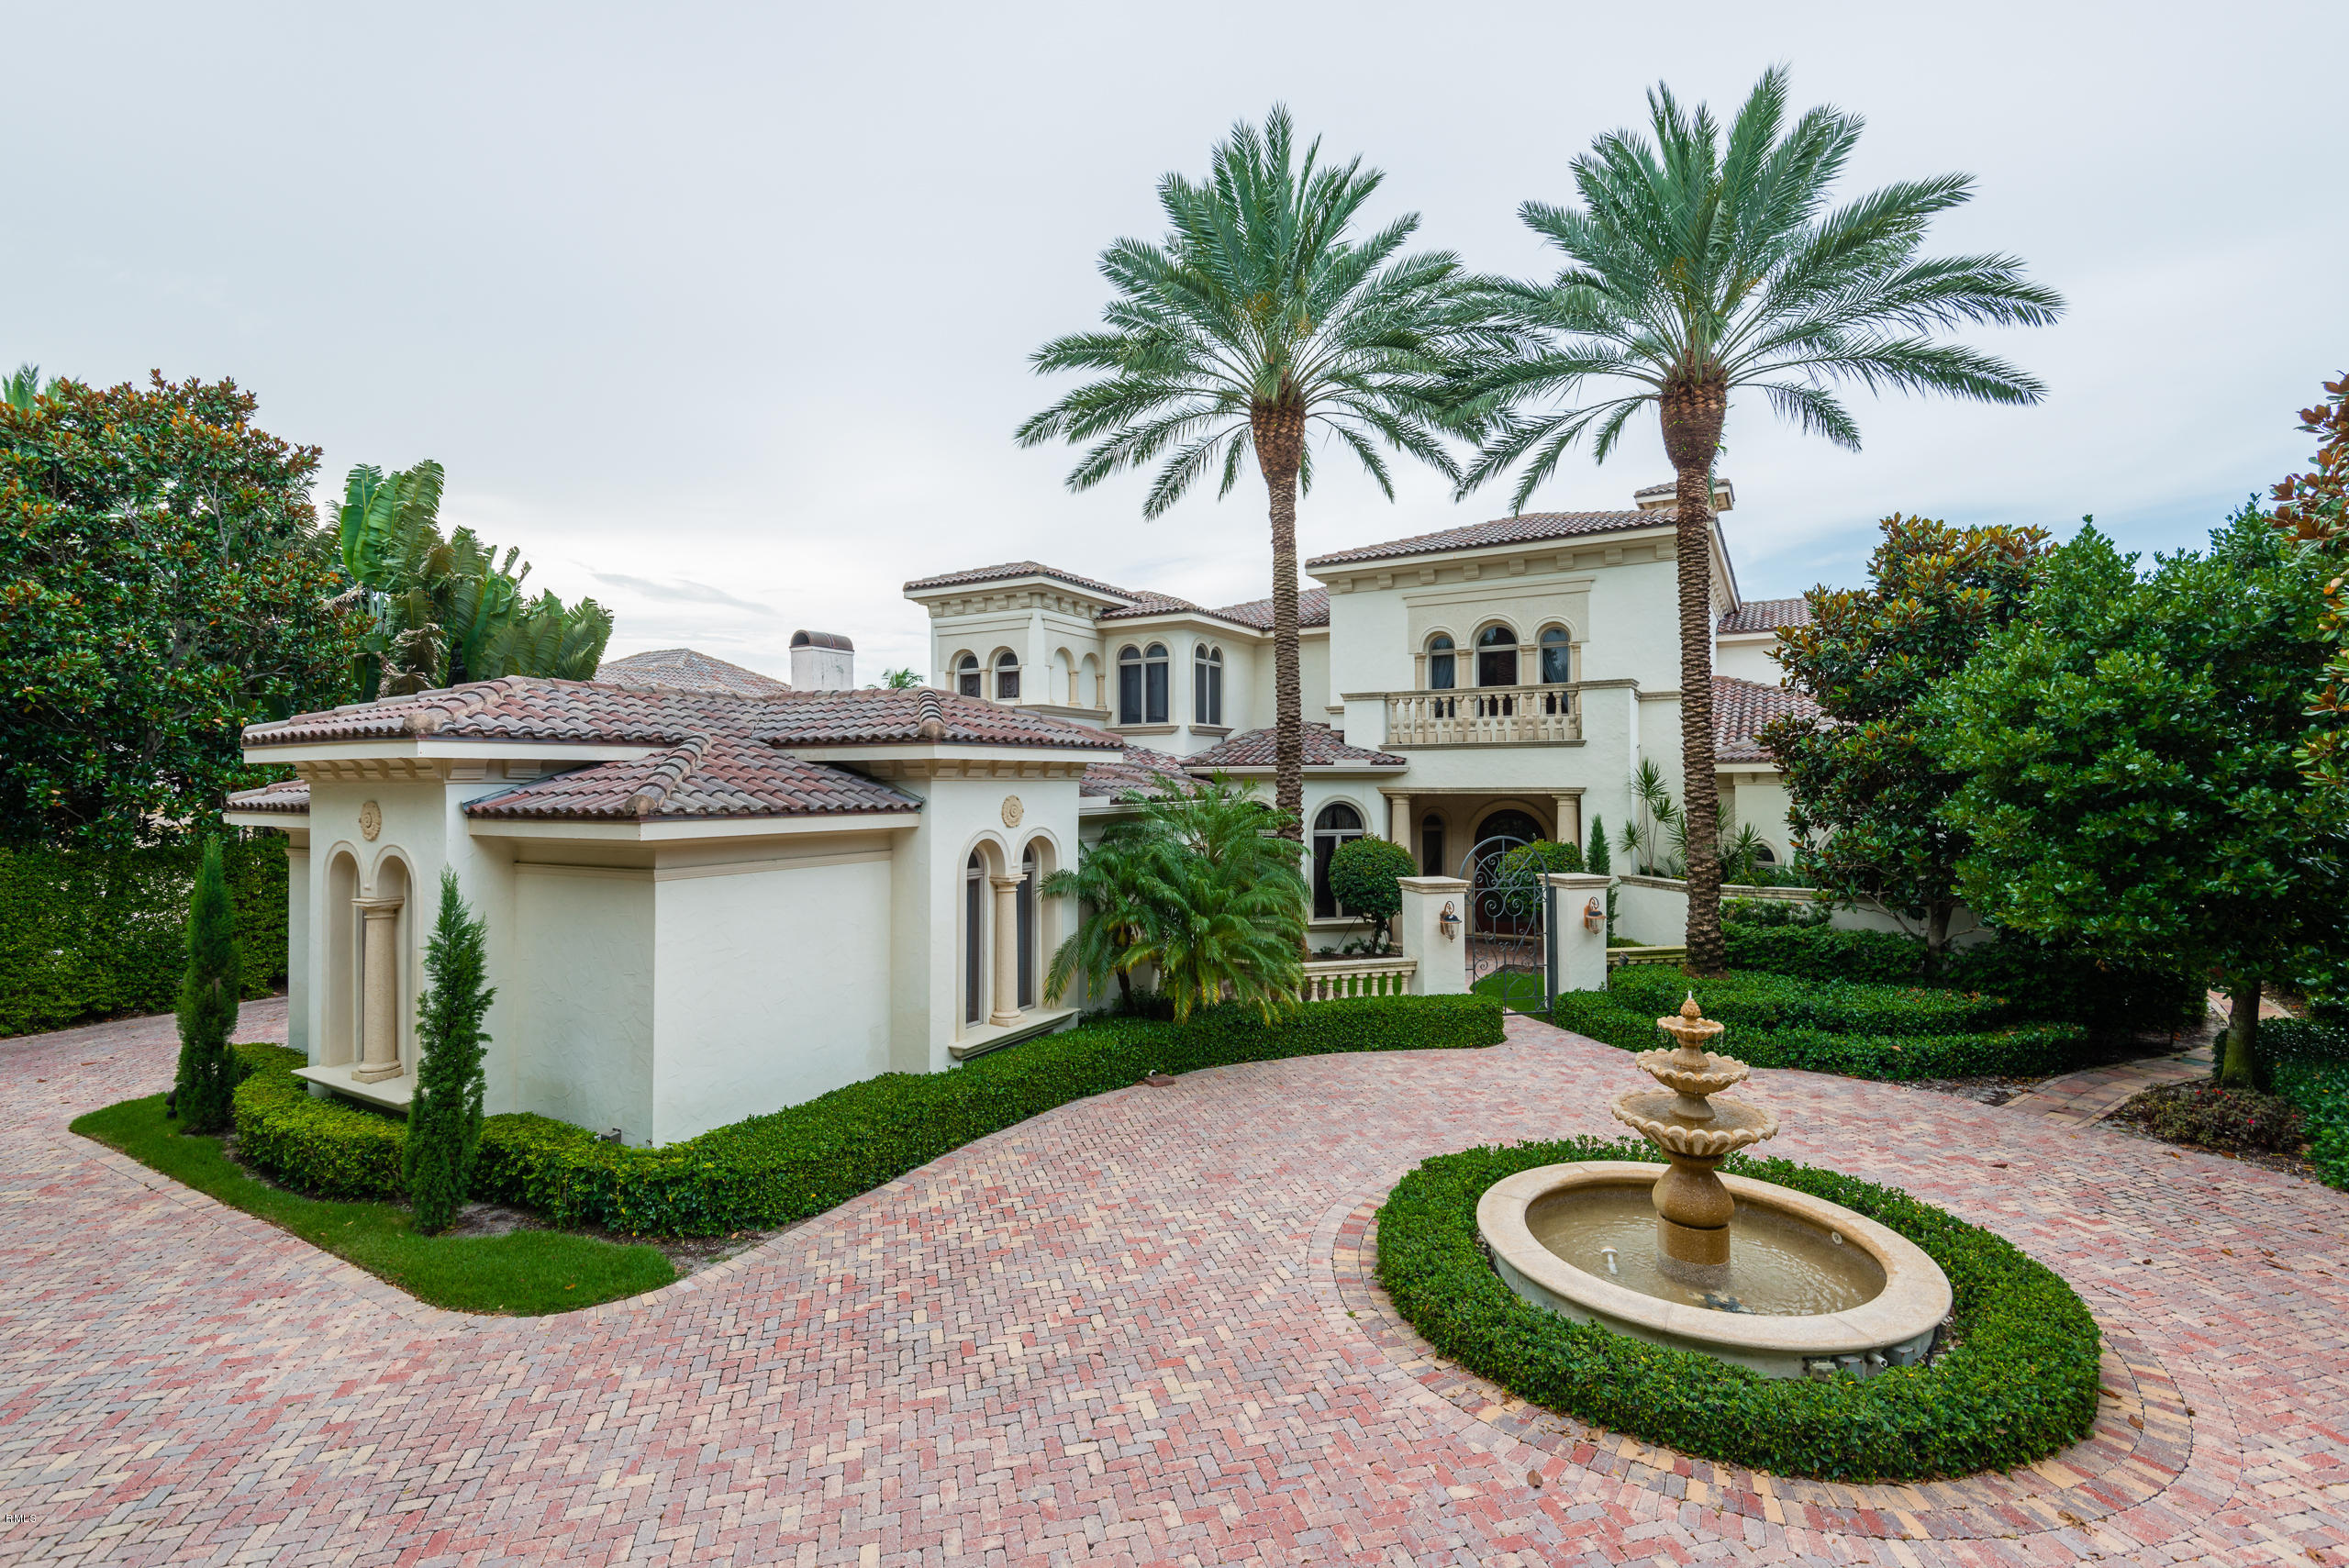 New Home for sale at 166 Spyglass Lane in Jupiter